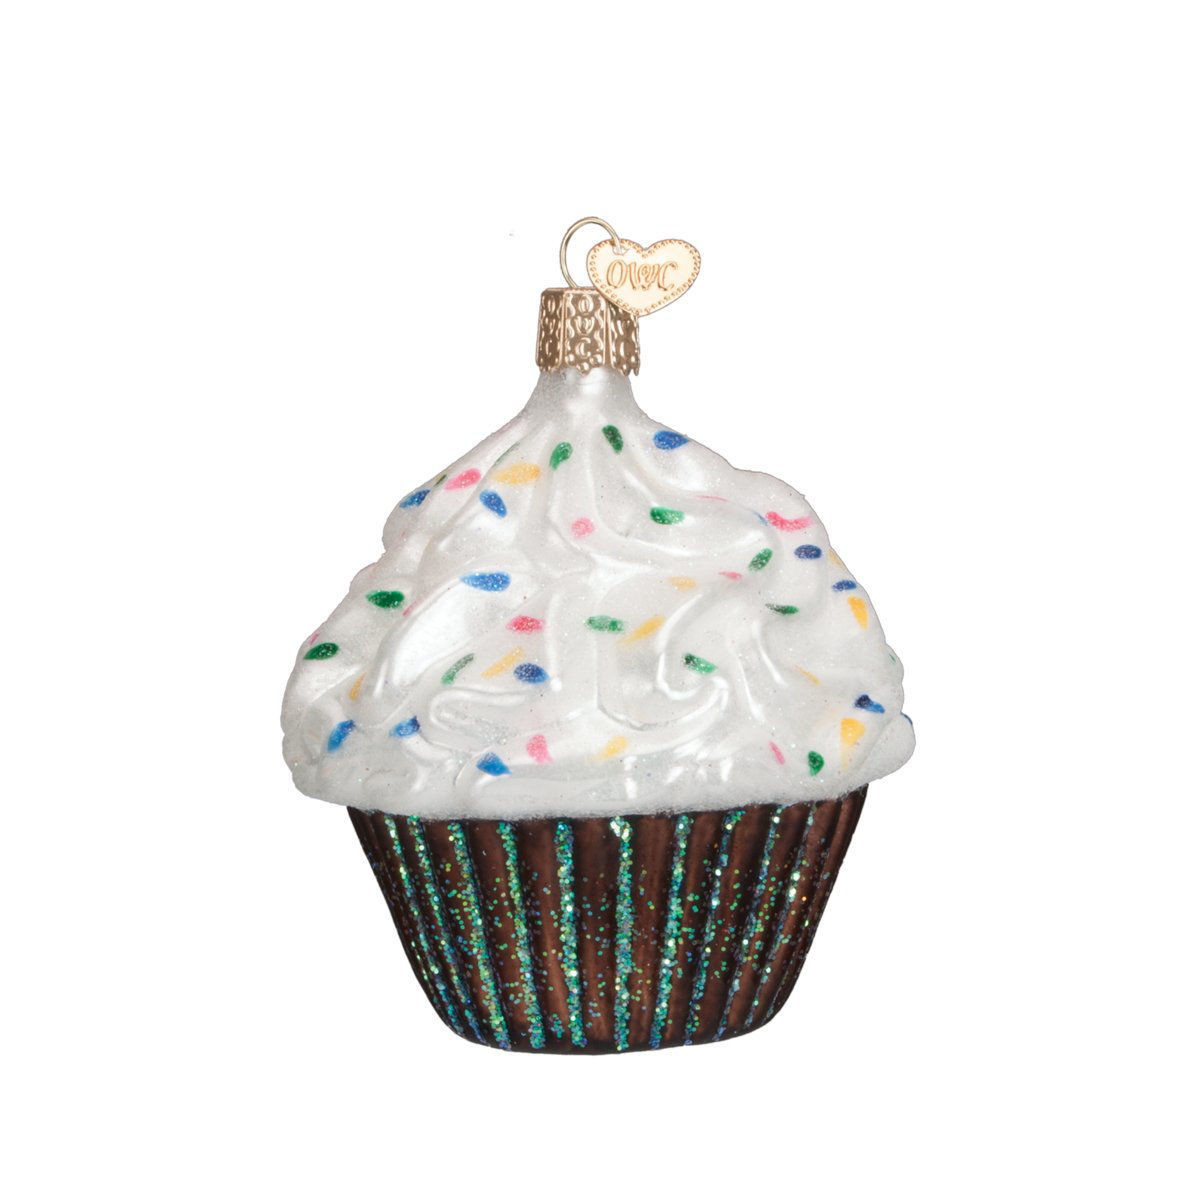 Chocolate Cupcake Ornament Set by Old World Christmas